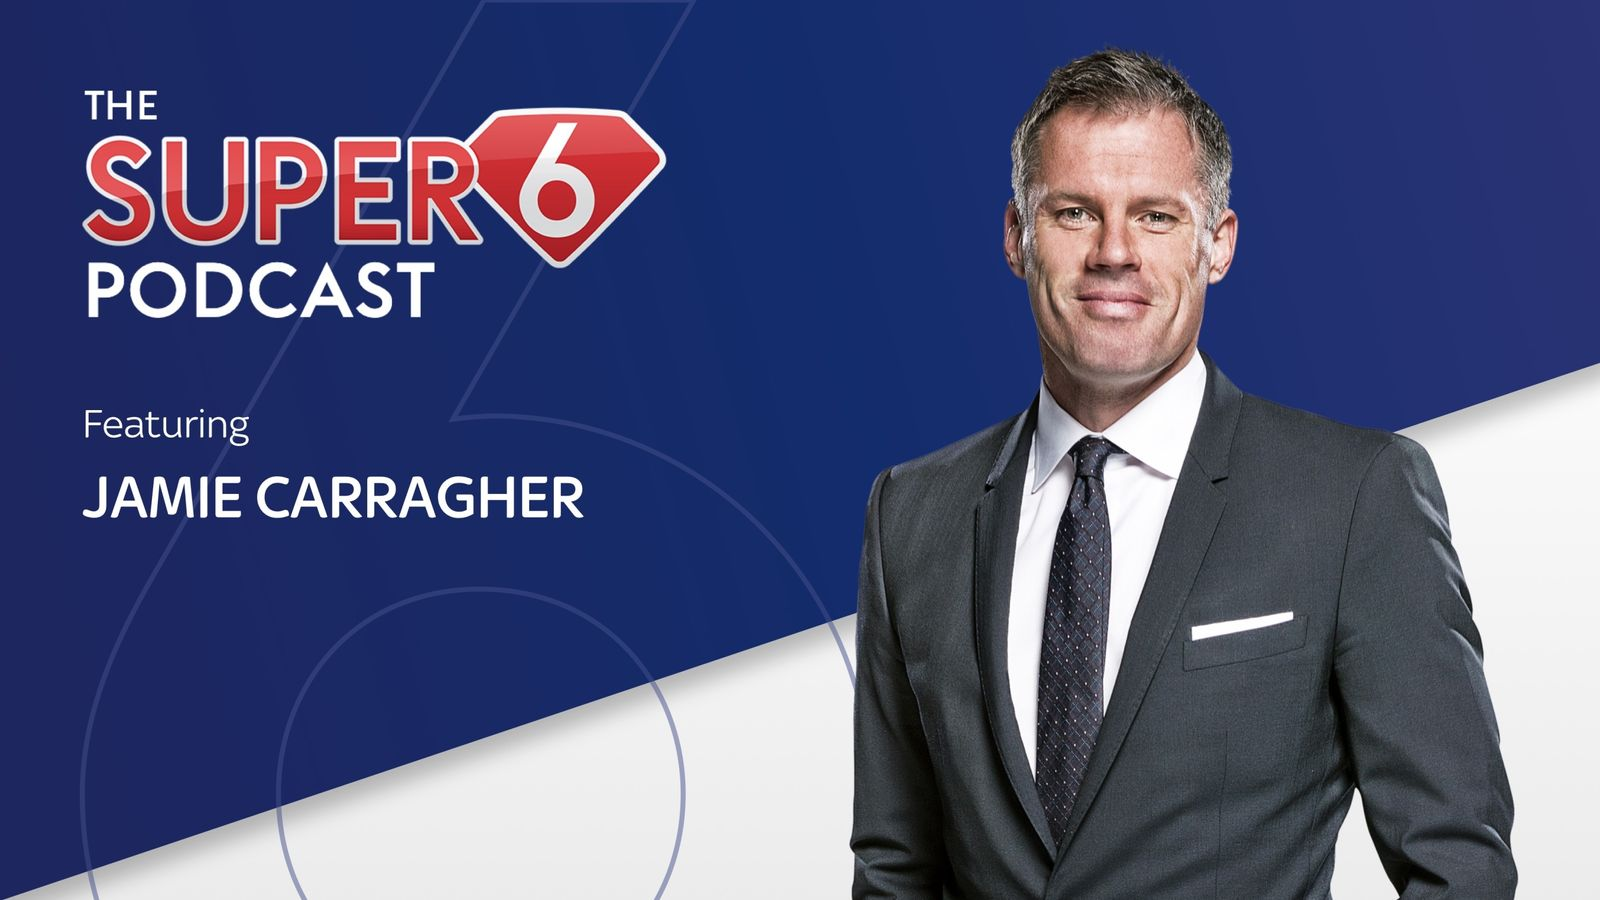 Jamie Carragher on the Super 6 Podcast: I hated Gary Neville!